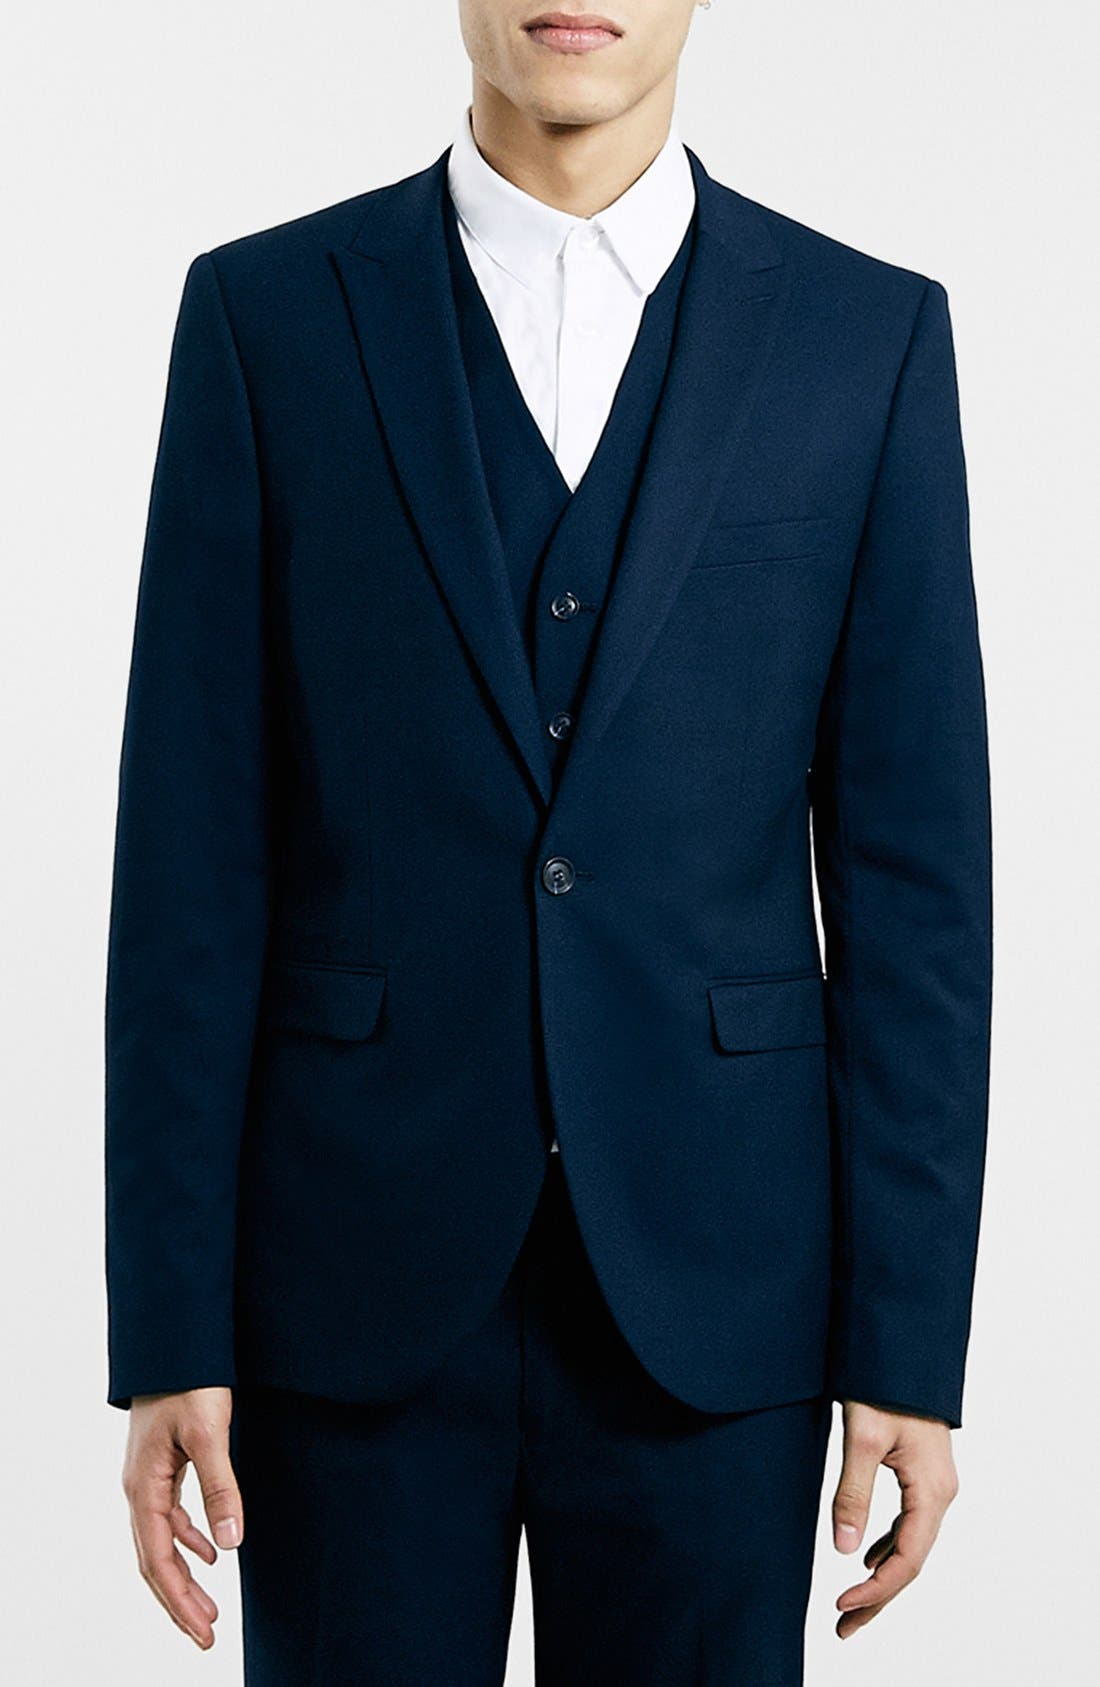 TOPMAN Navy Textured Skinny Fit Suit Jacket, Main, color, 410